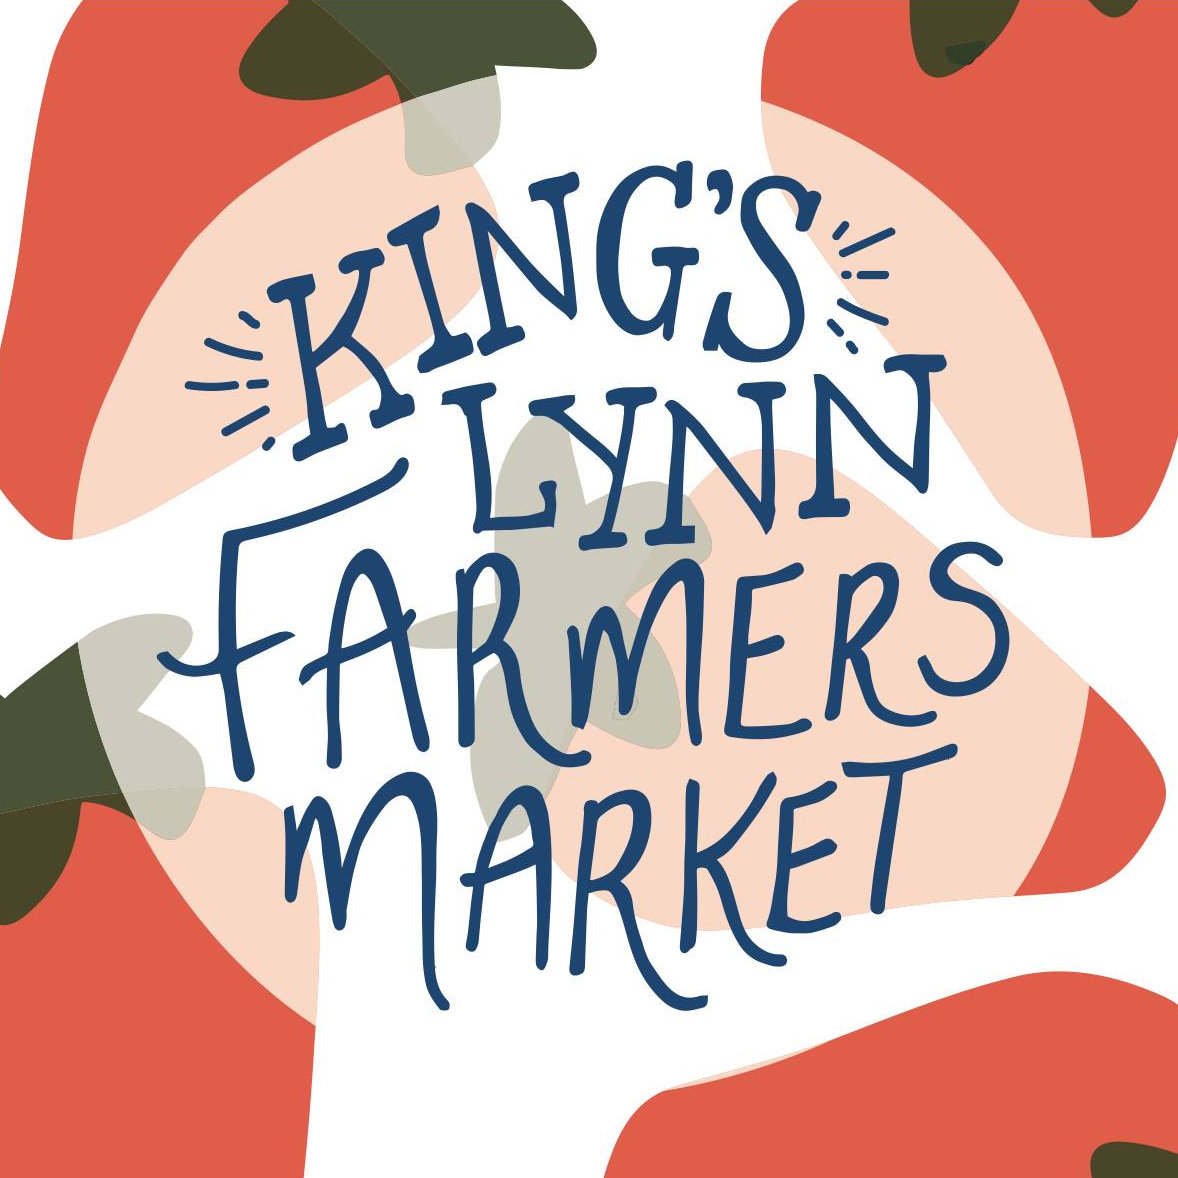 Kings Lynn Farmers Market | King�s Lynn Farmers Market takes place on the second Saturday of every month on the Saturday Market Place, featuring a great selection of quality, local produce and a variety of local traders. | Saturday Market Place, King�s Lynn, West Norfolk